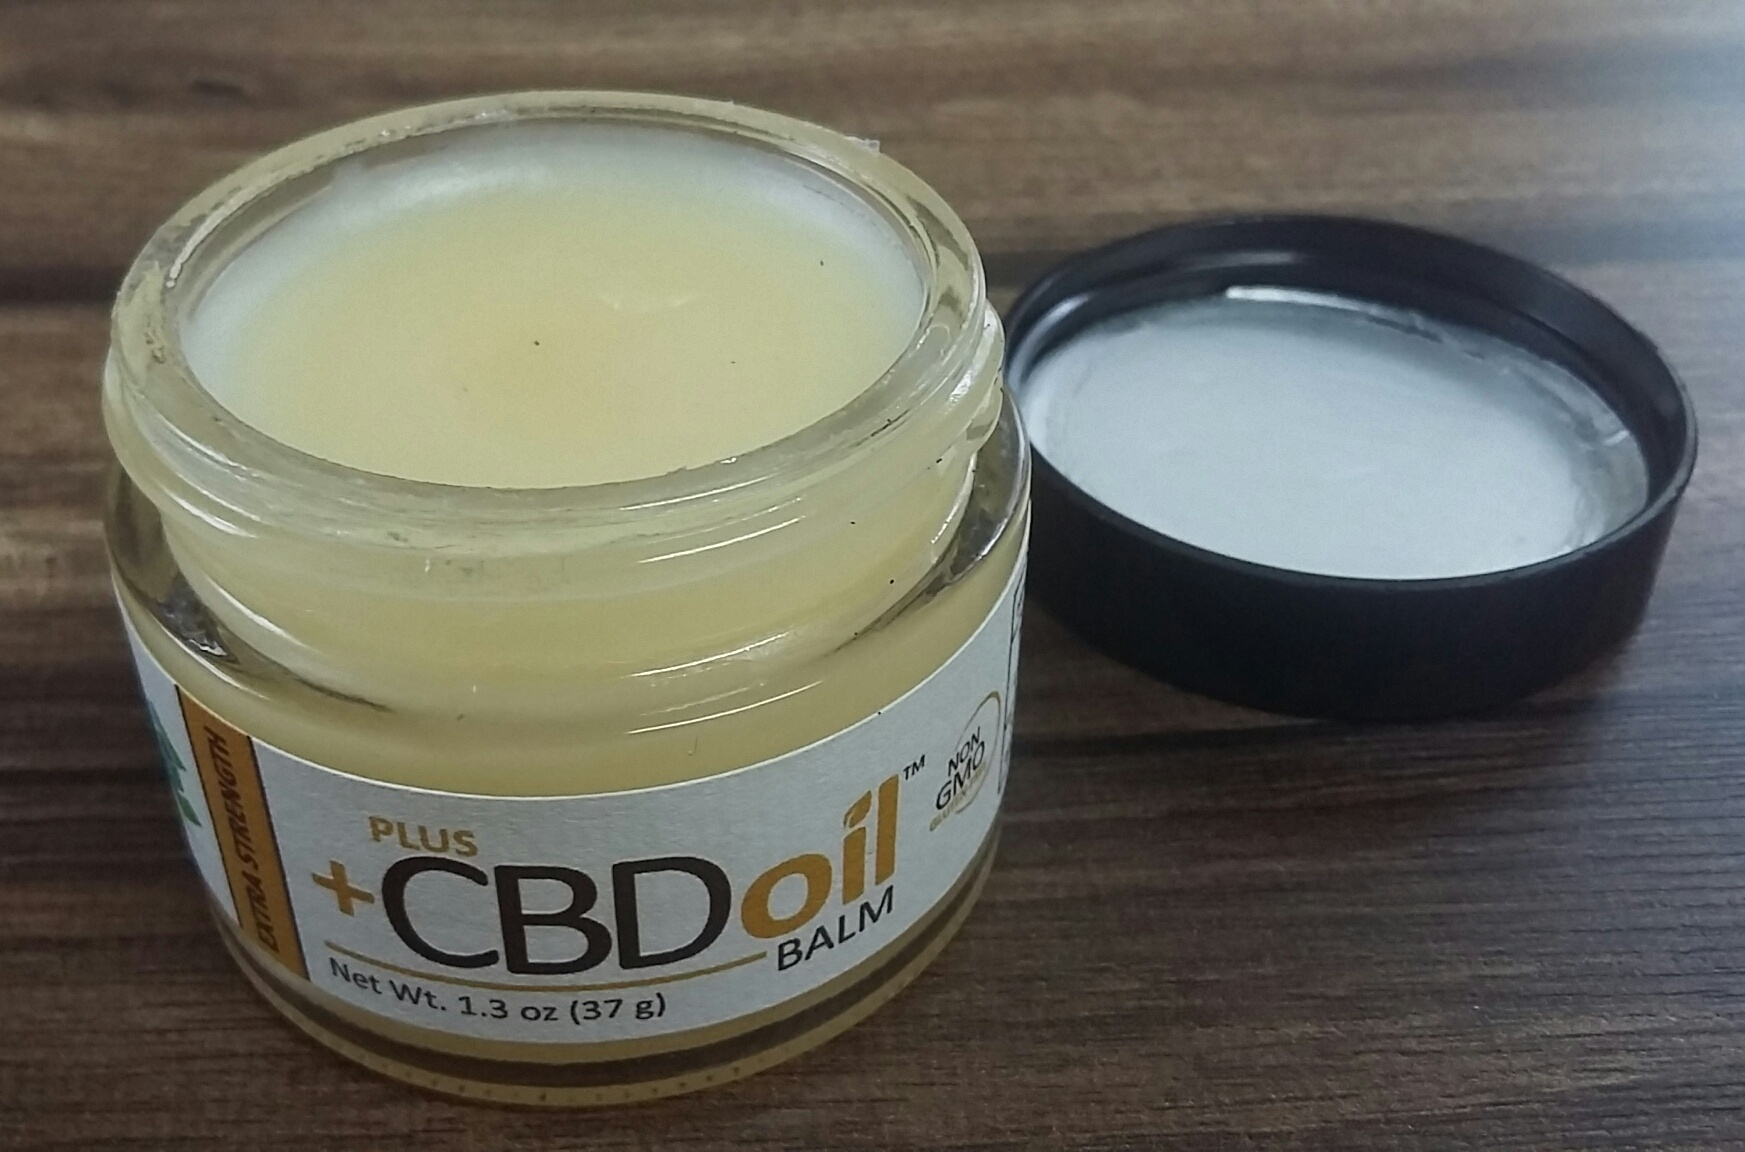 PlusCBD Oil To Use Or Not To Use